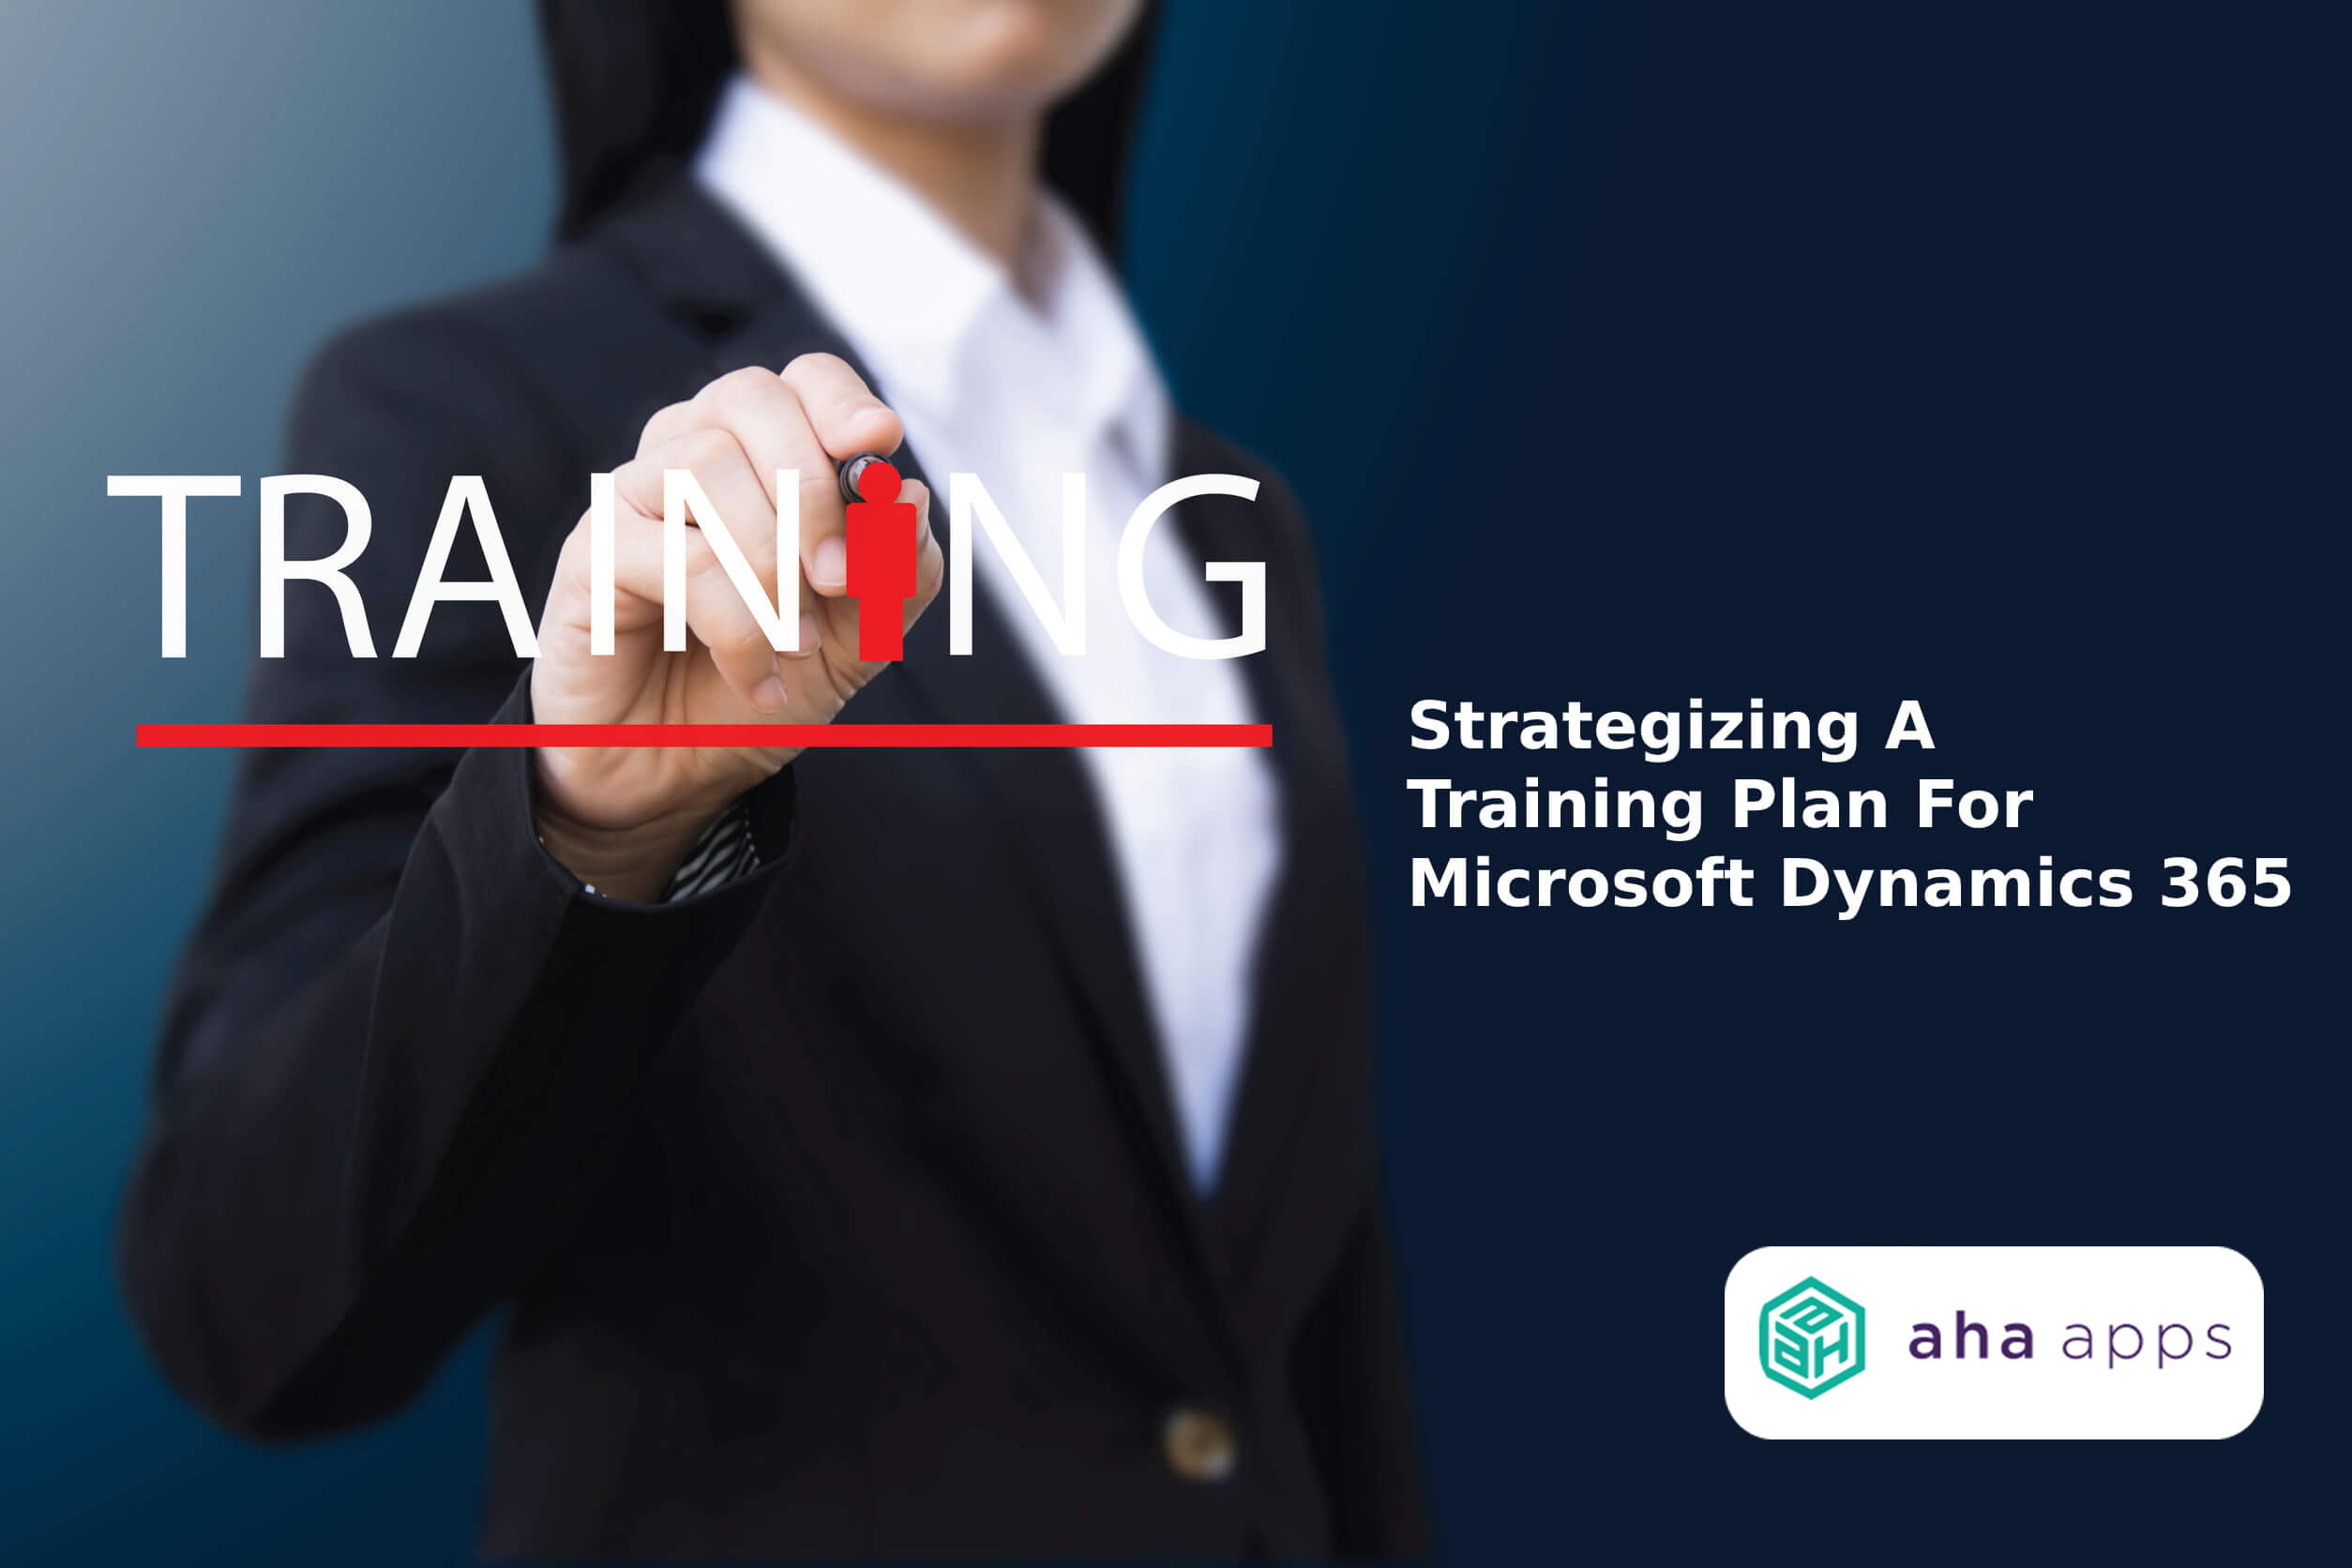 training plan for Microsoft Dynamics 365